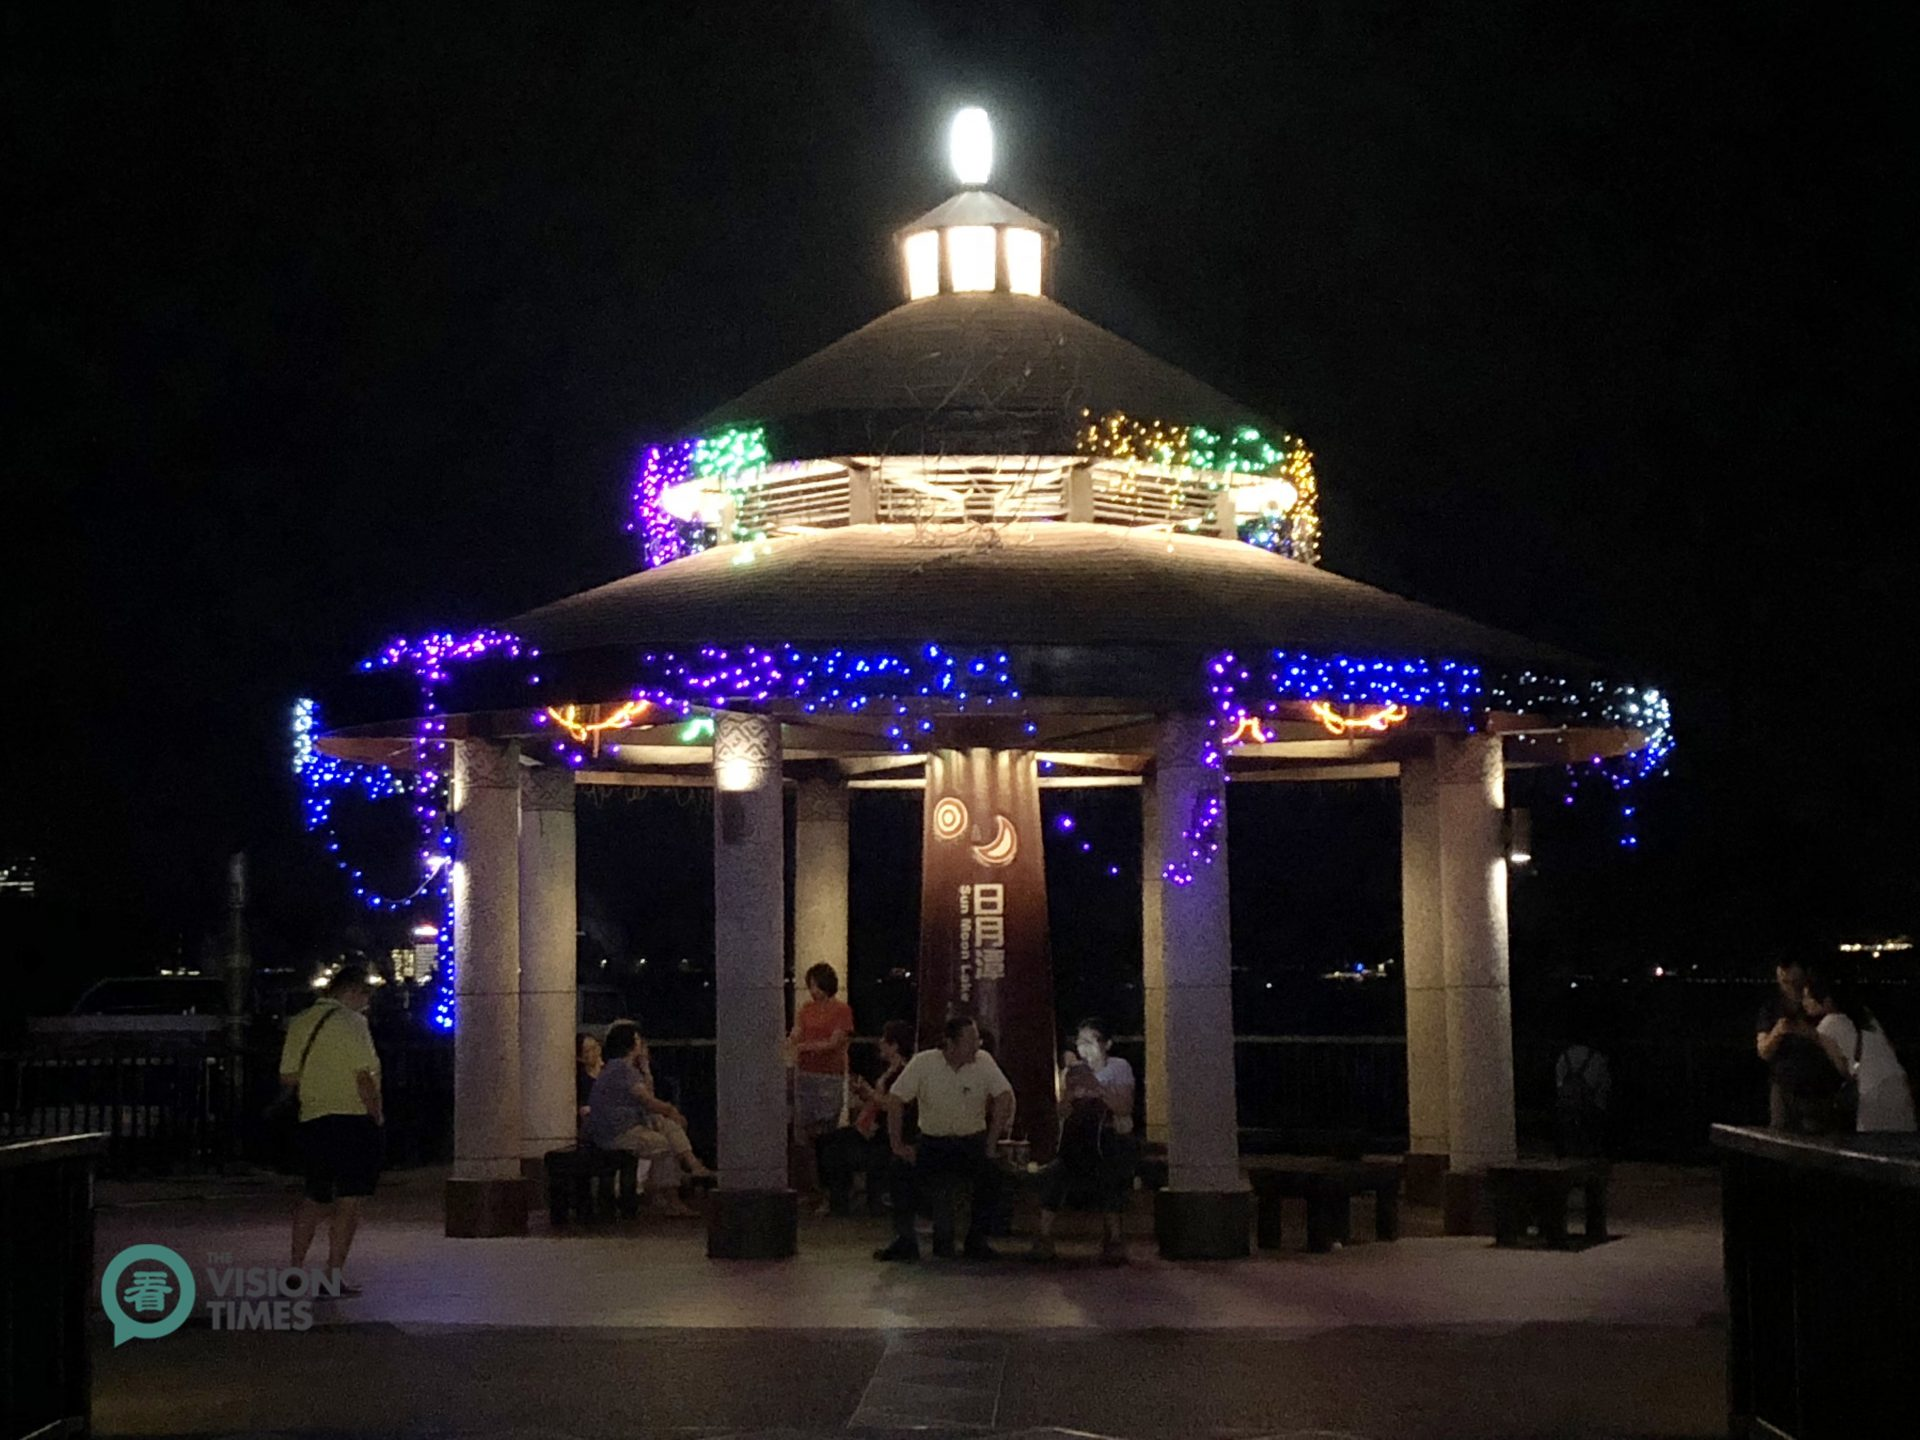 The pavilion at Ita Thao Pier is a great location to enjoy the night view of the lake and breez. (Image: Billy Shyu / Vision Times)